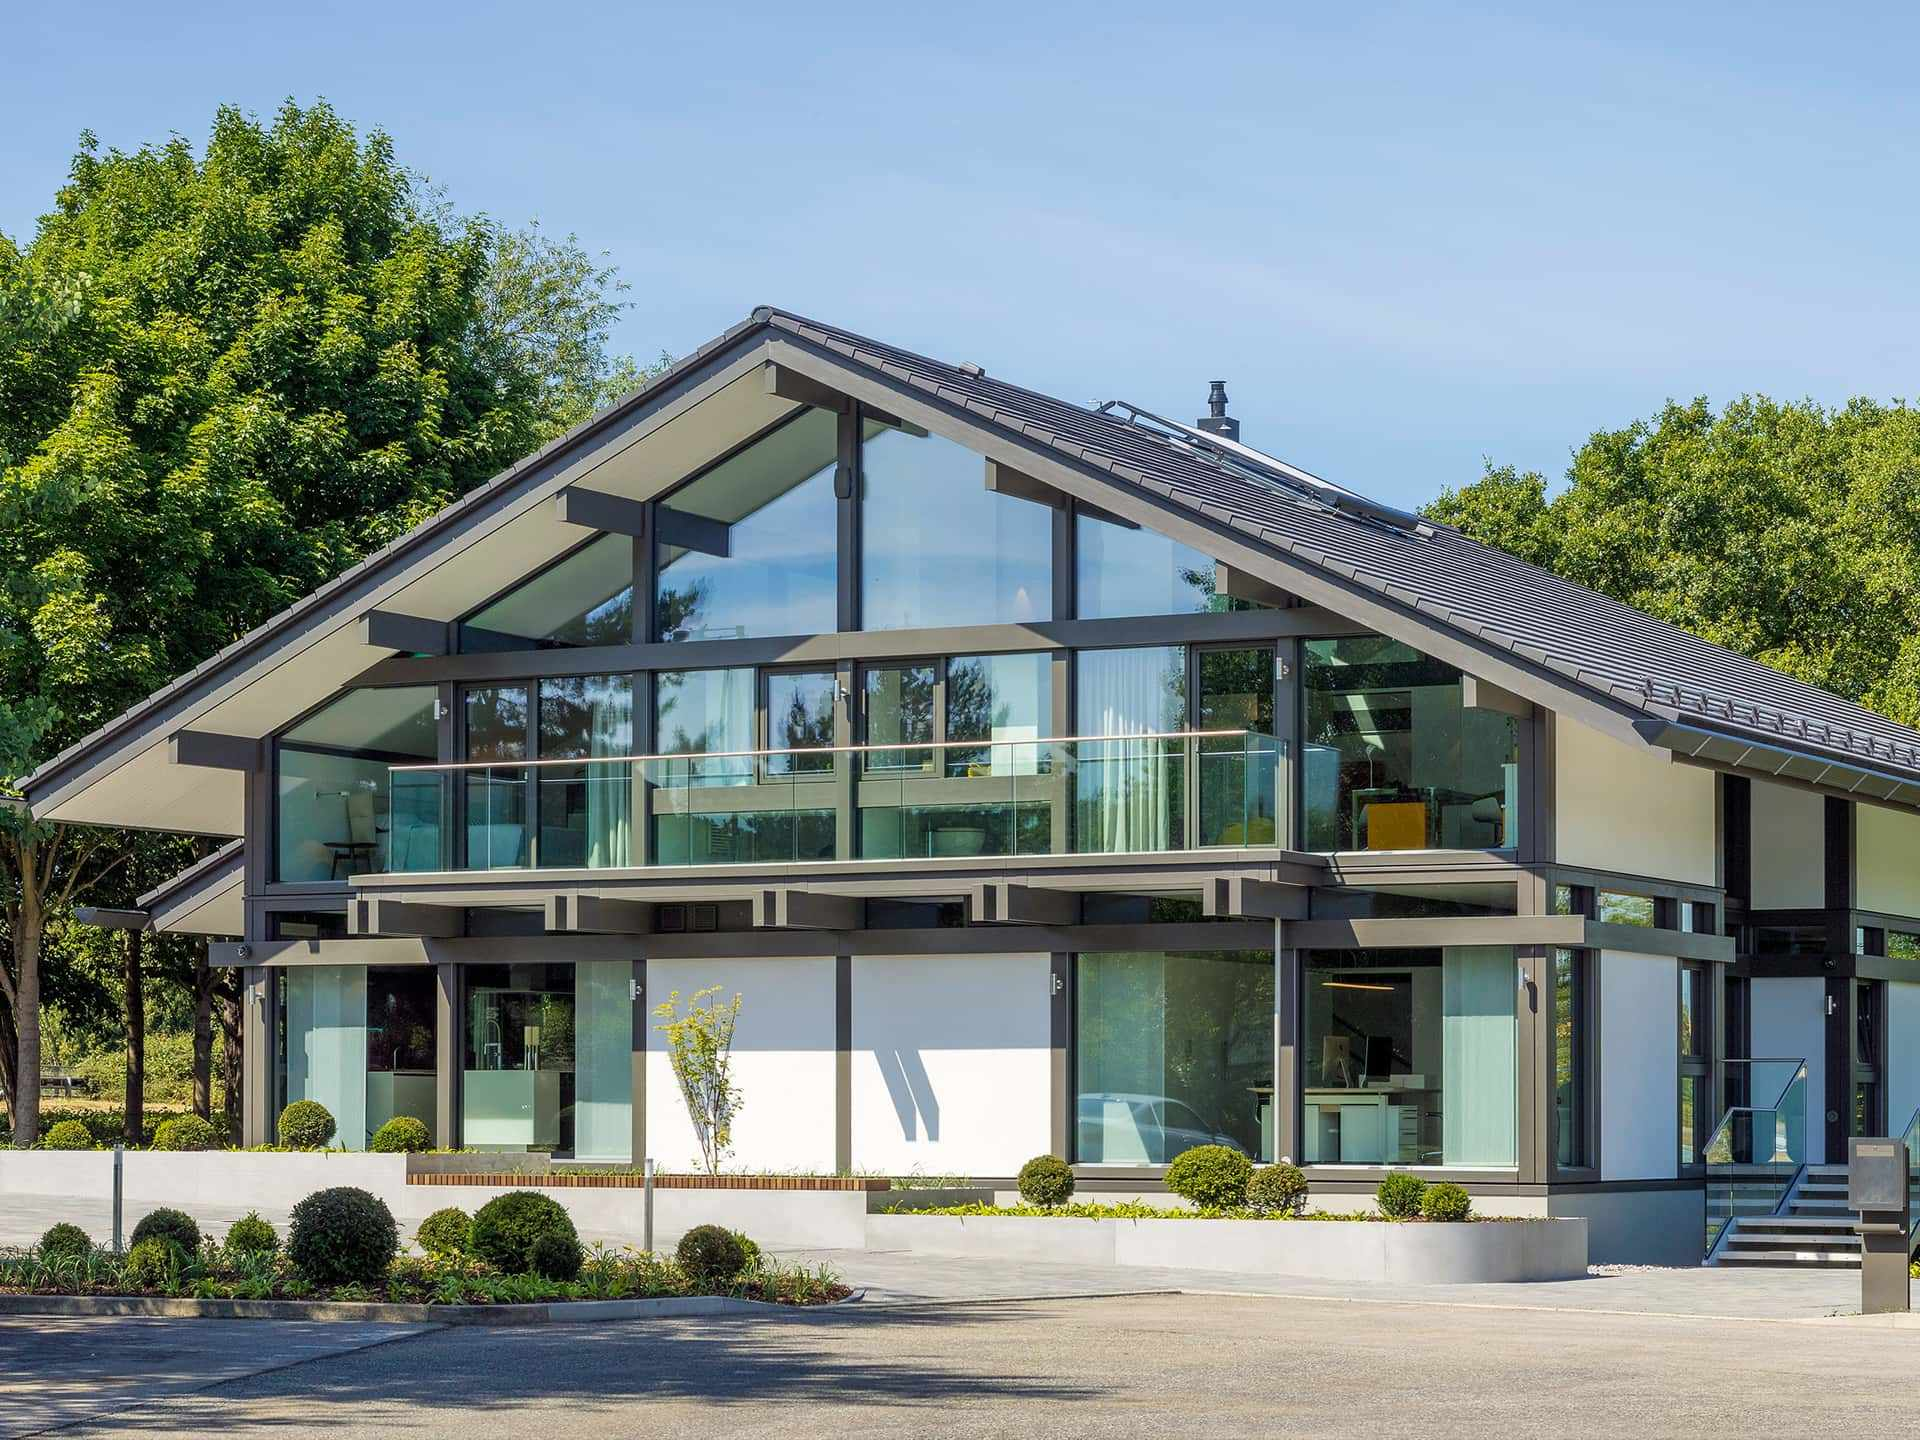 Likeable Huf Haus Kosten Reference Of Riverview. Villa In Skelettbauweise